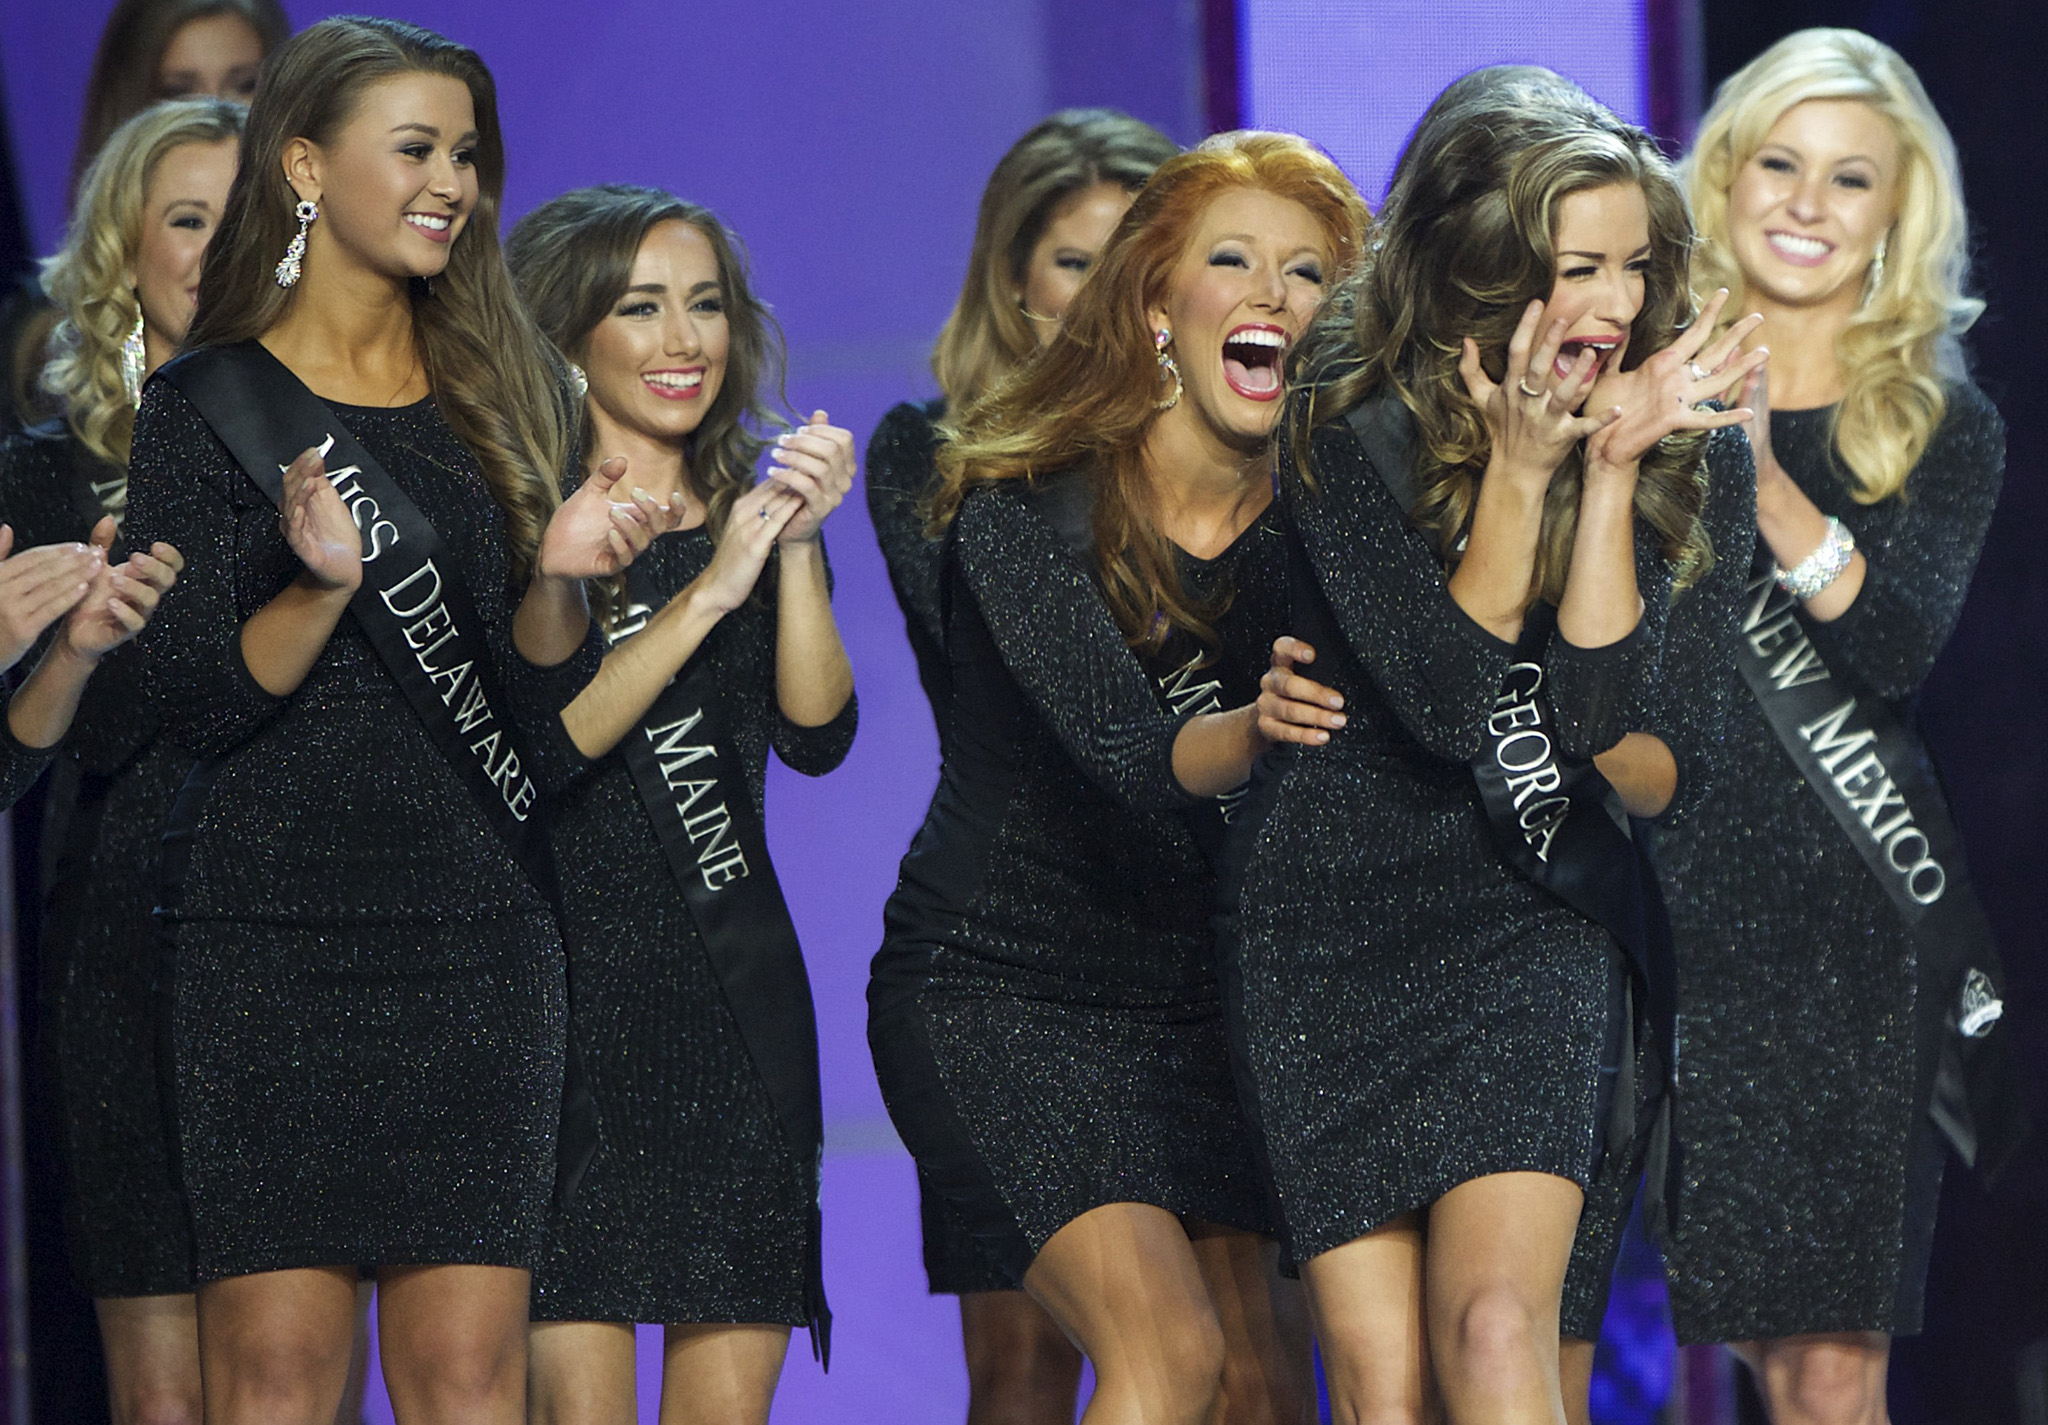 Miss Georgia, Betty Cantrell, reacts to advancing, en route to victory, at the Miss America Pageant at Boardwalk Hall, in Atlantic City, New Jersey